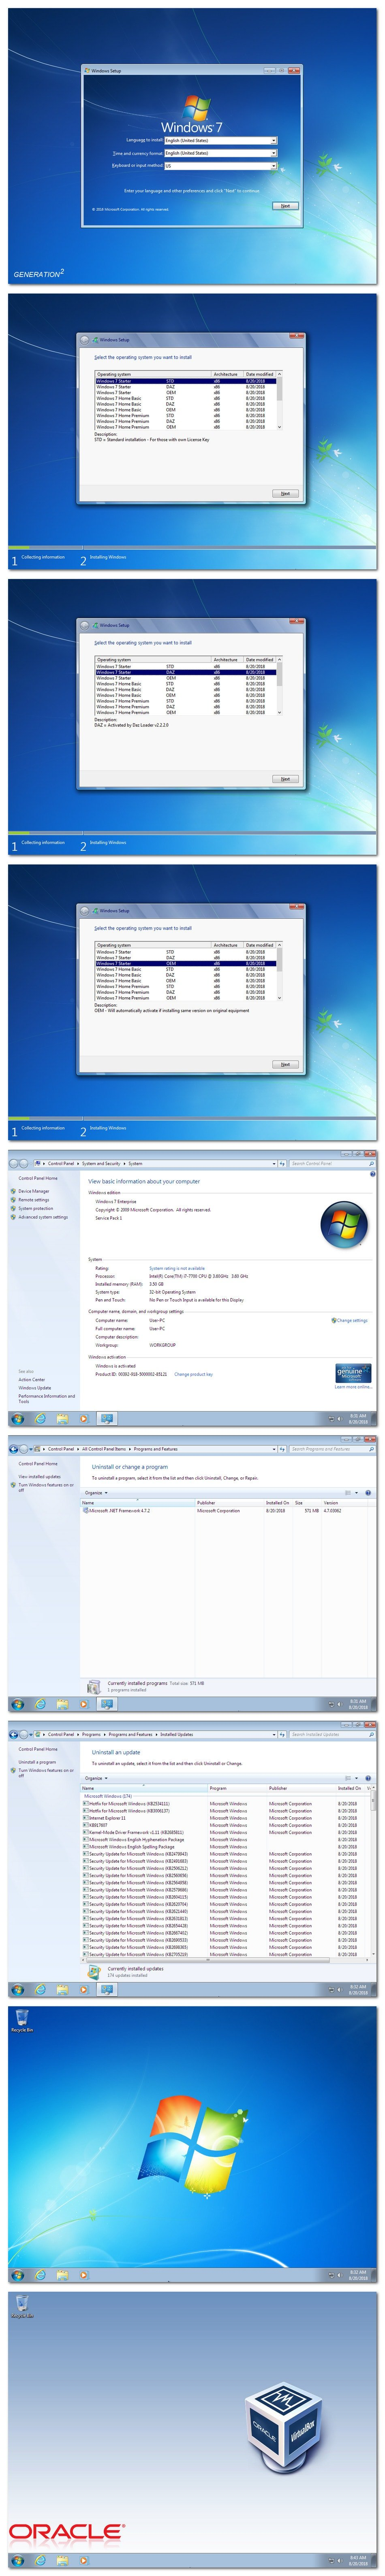 Windows 7 sp1 loader x86